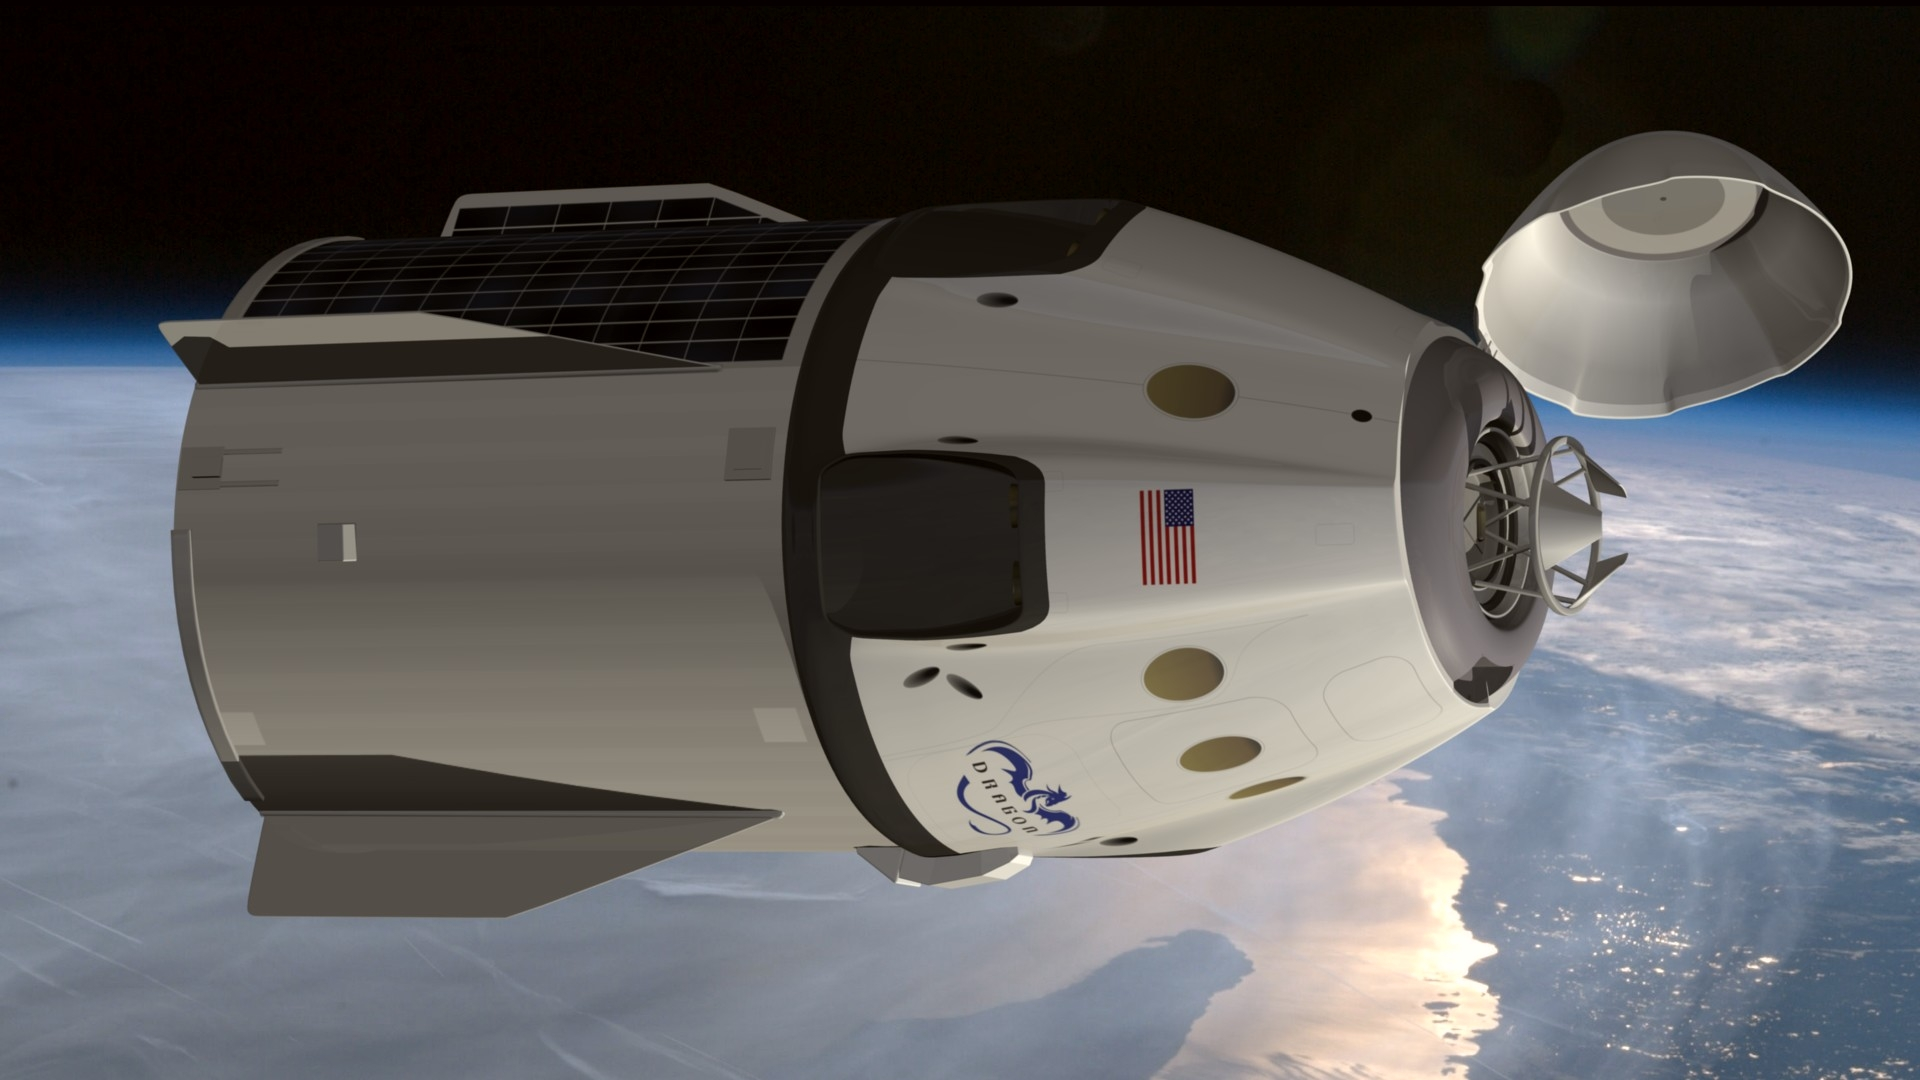 SpaceX Dragon V2 by Emigepa on DeviantArt